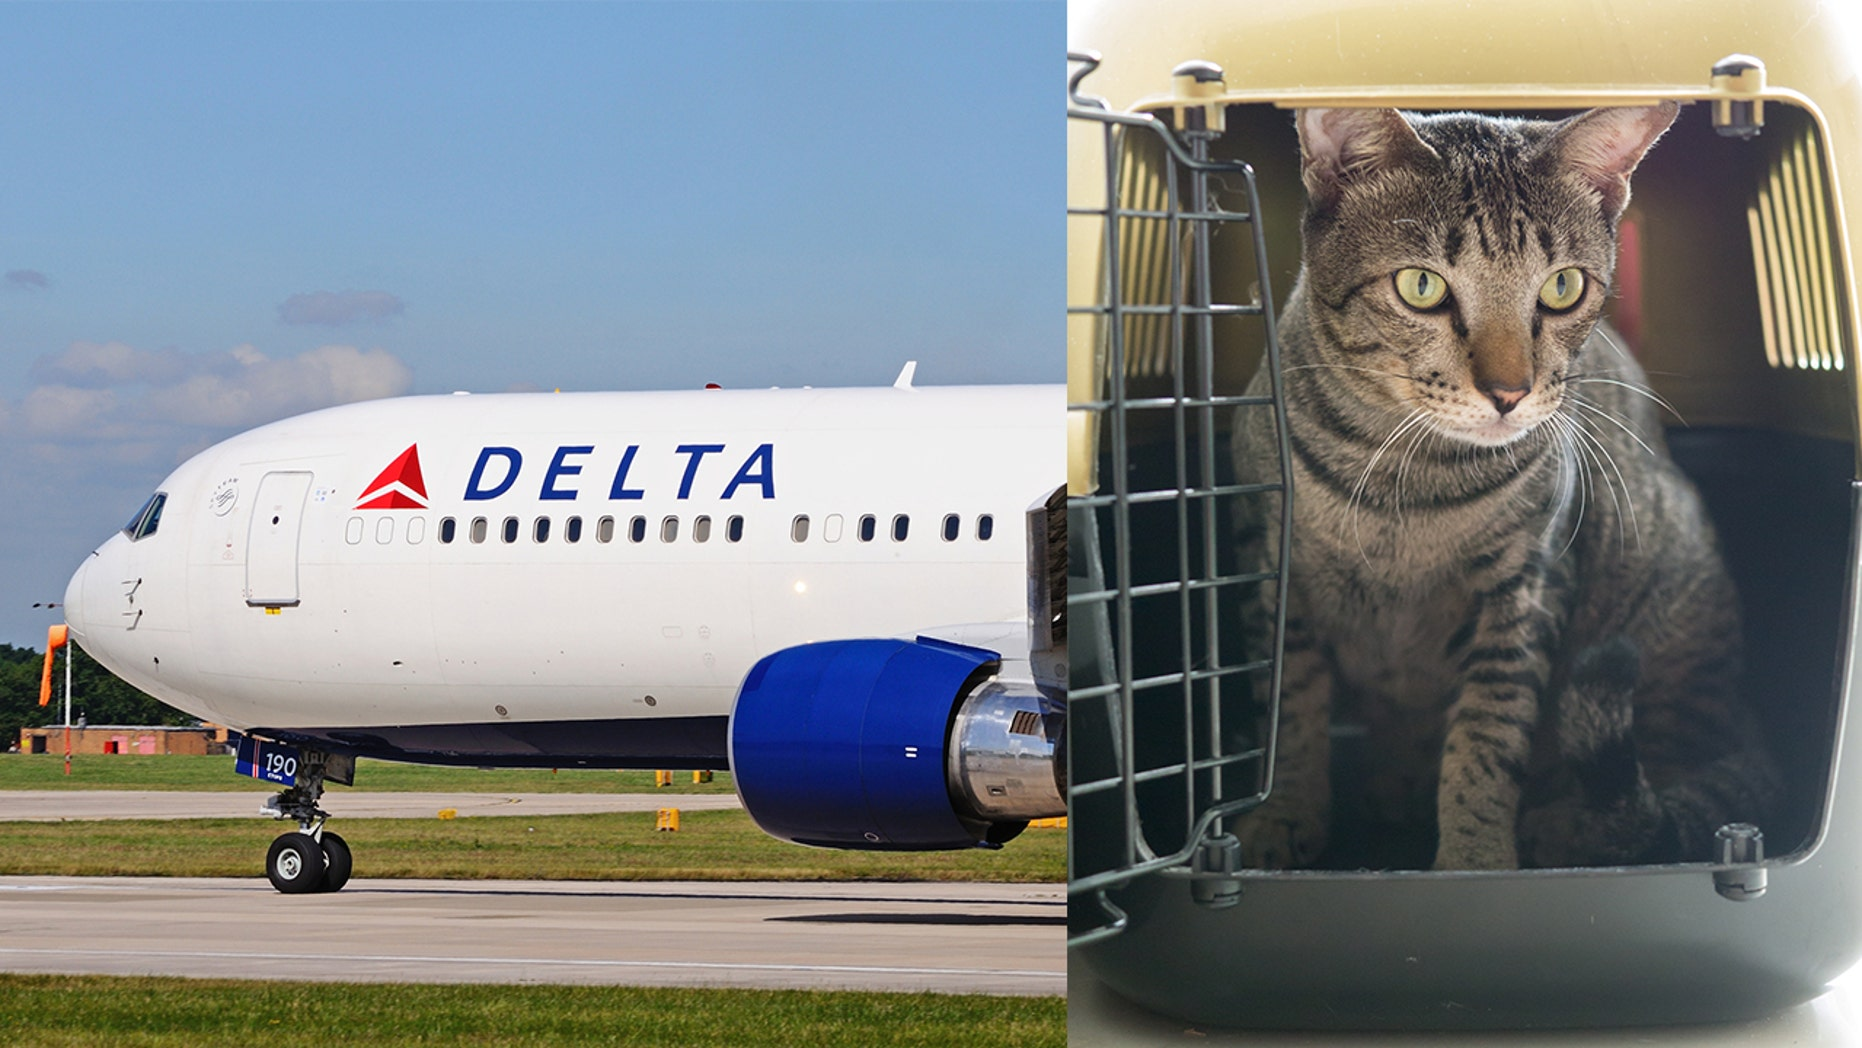 A family claims Delta prioritized cats over the needs of an allergic passenger.